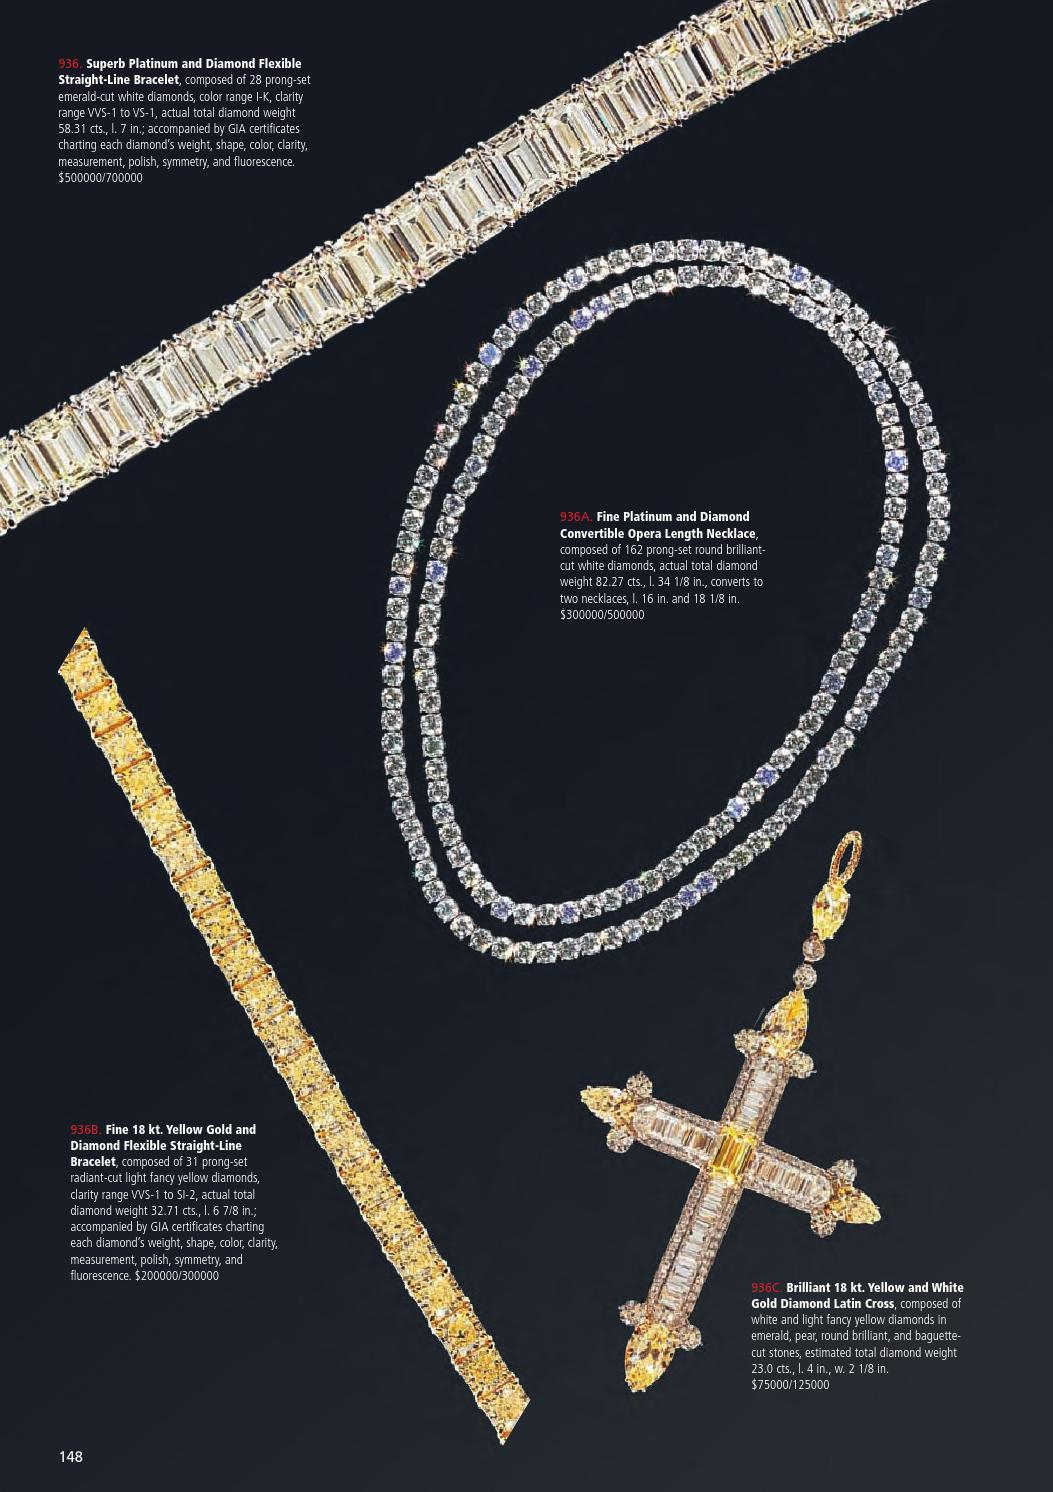 February 19 21, 2016 Winter Estates Auctionneal Auction Intended For Most Popular Round Brilliant Diamond Straightline Necklaces (View 16 of 25)